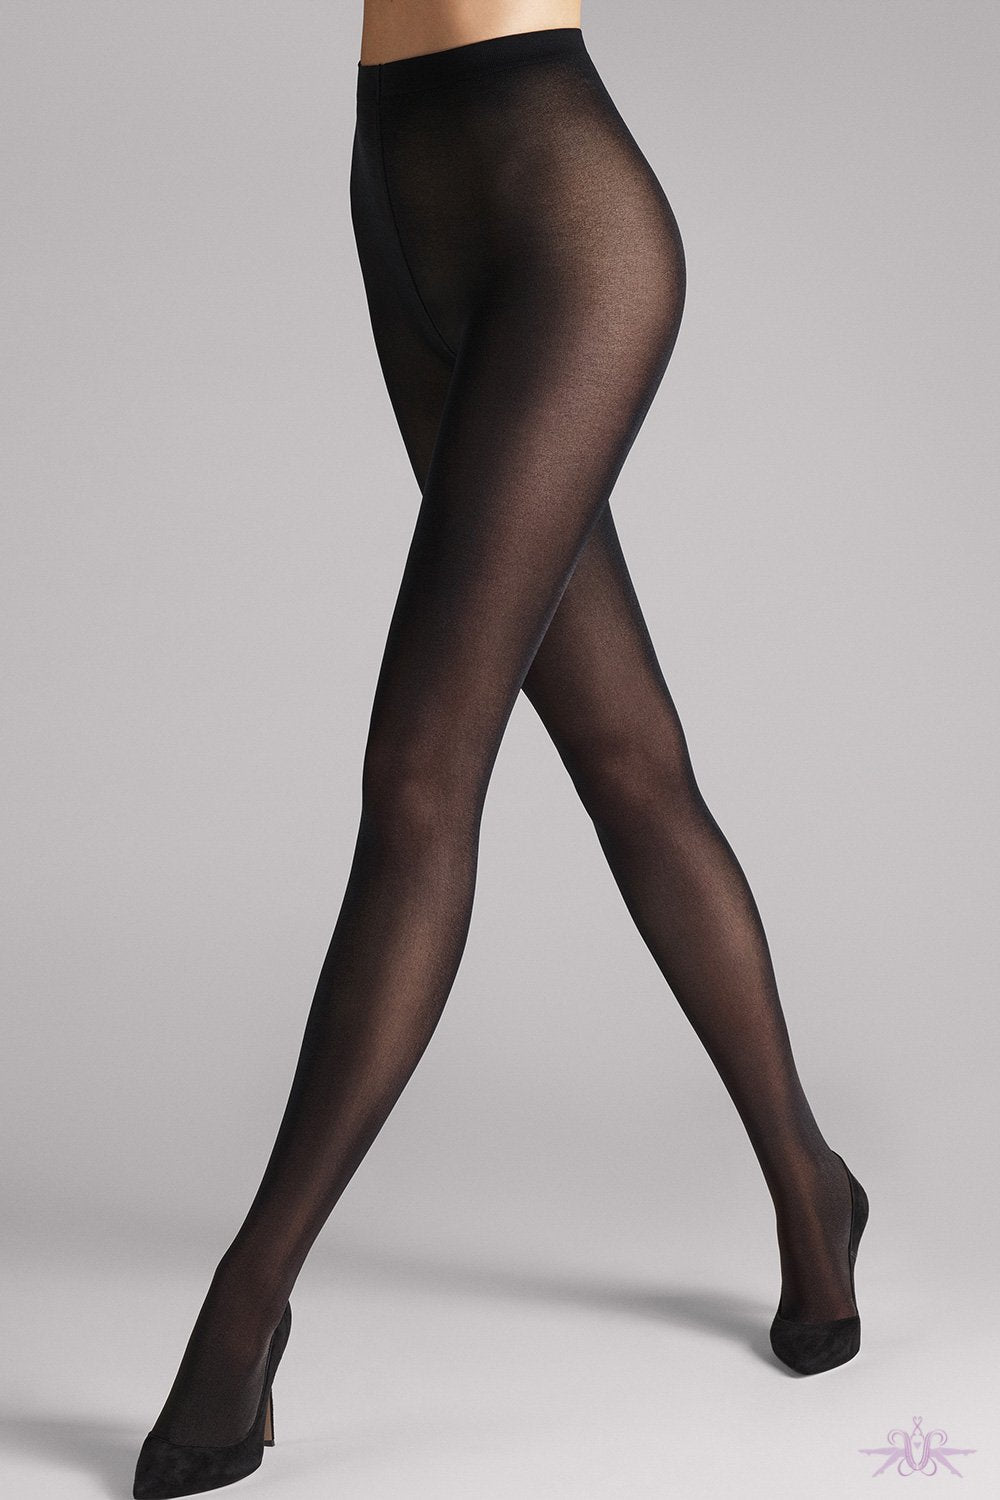 Wolford Satin Opaque 50 Tights - The Hosiery Box